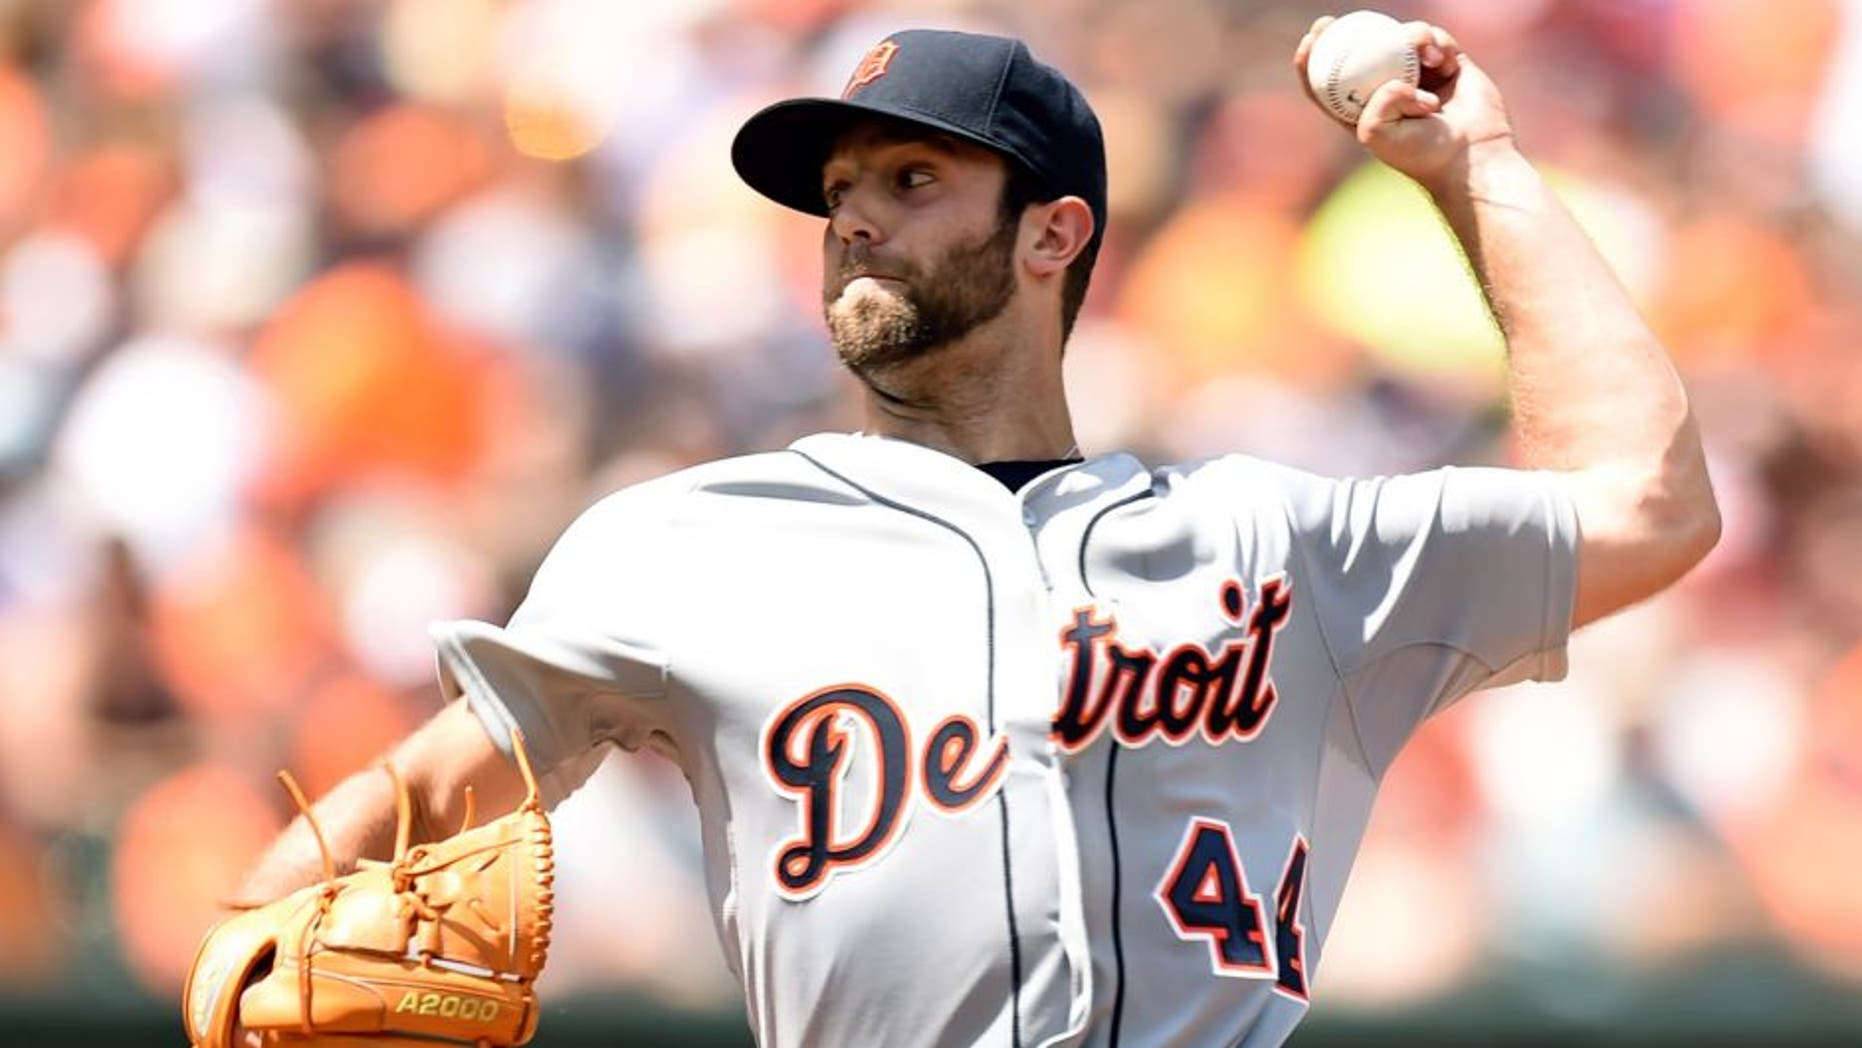 BALTIMORE, MD - AUGUST 02: Daniel Norris #44 of the Detroit Tigers pitches in the third inning during a baseball game against the Baltimore Orioles at Oriole Park at Camden Yards on August 02, 2015 in Baltimore, Maryland. (Photo by Mitchell Layton/Getty Images)